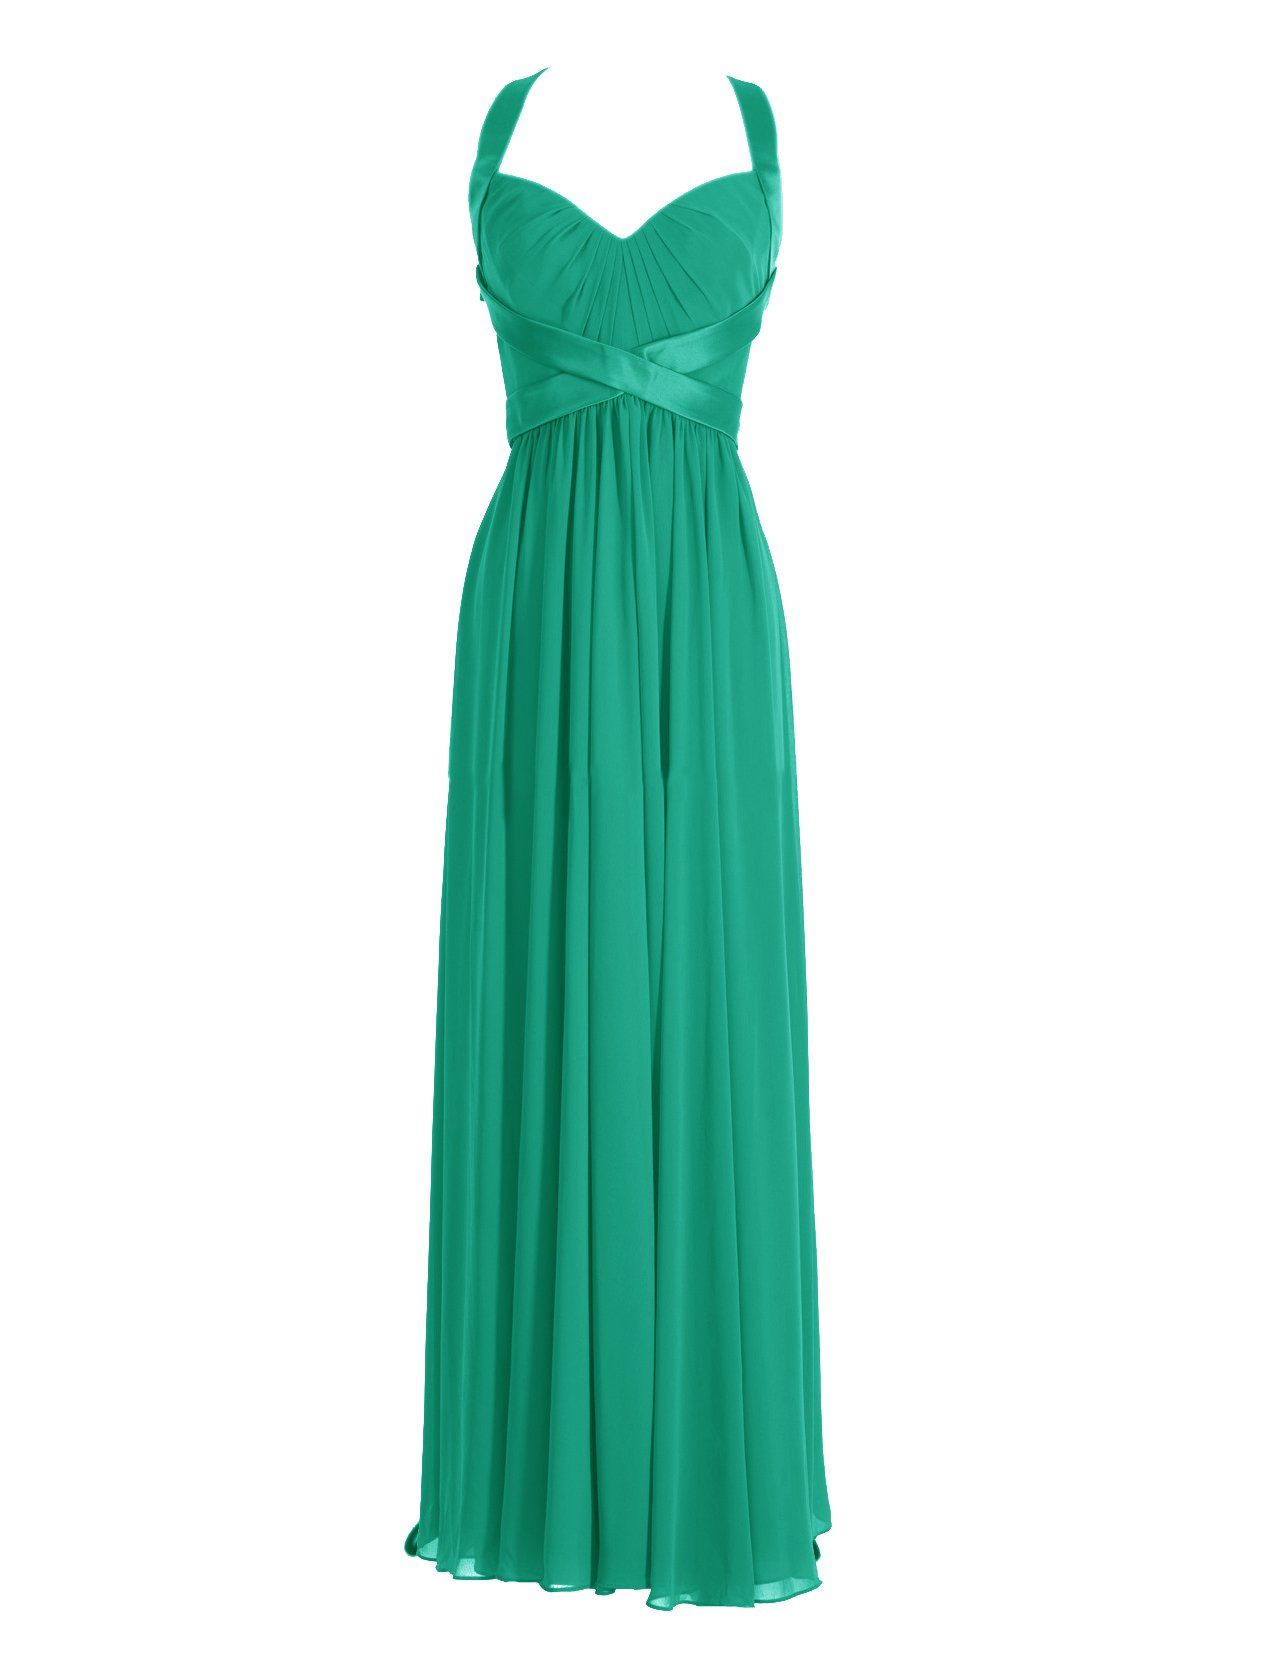 Diyouth Halter Long Bridesmaid Dresses Column Sweetheart Formal ...